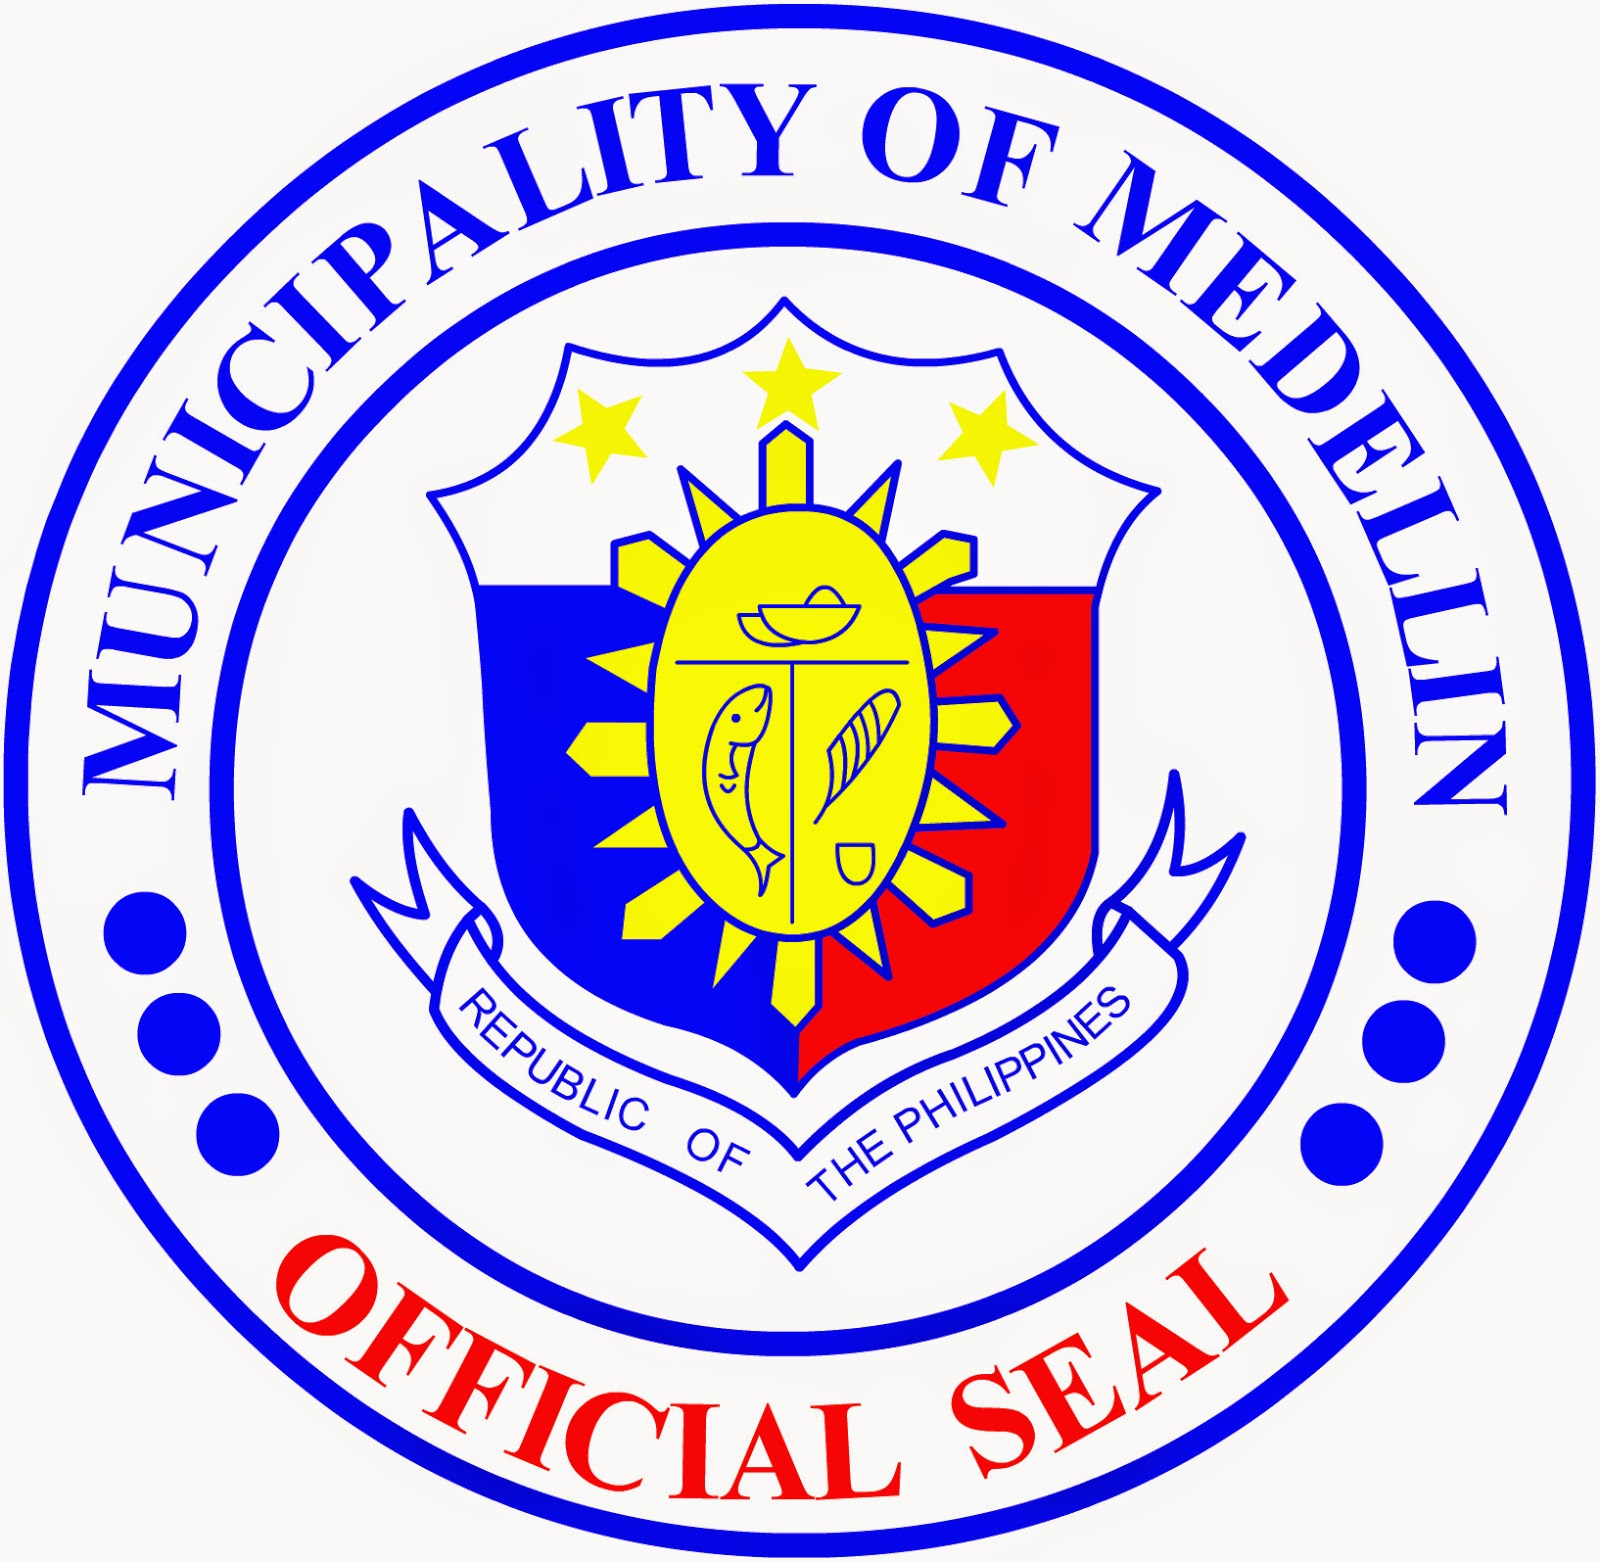 Municipality of Medellin Official Seal